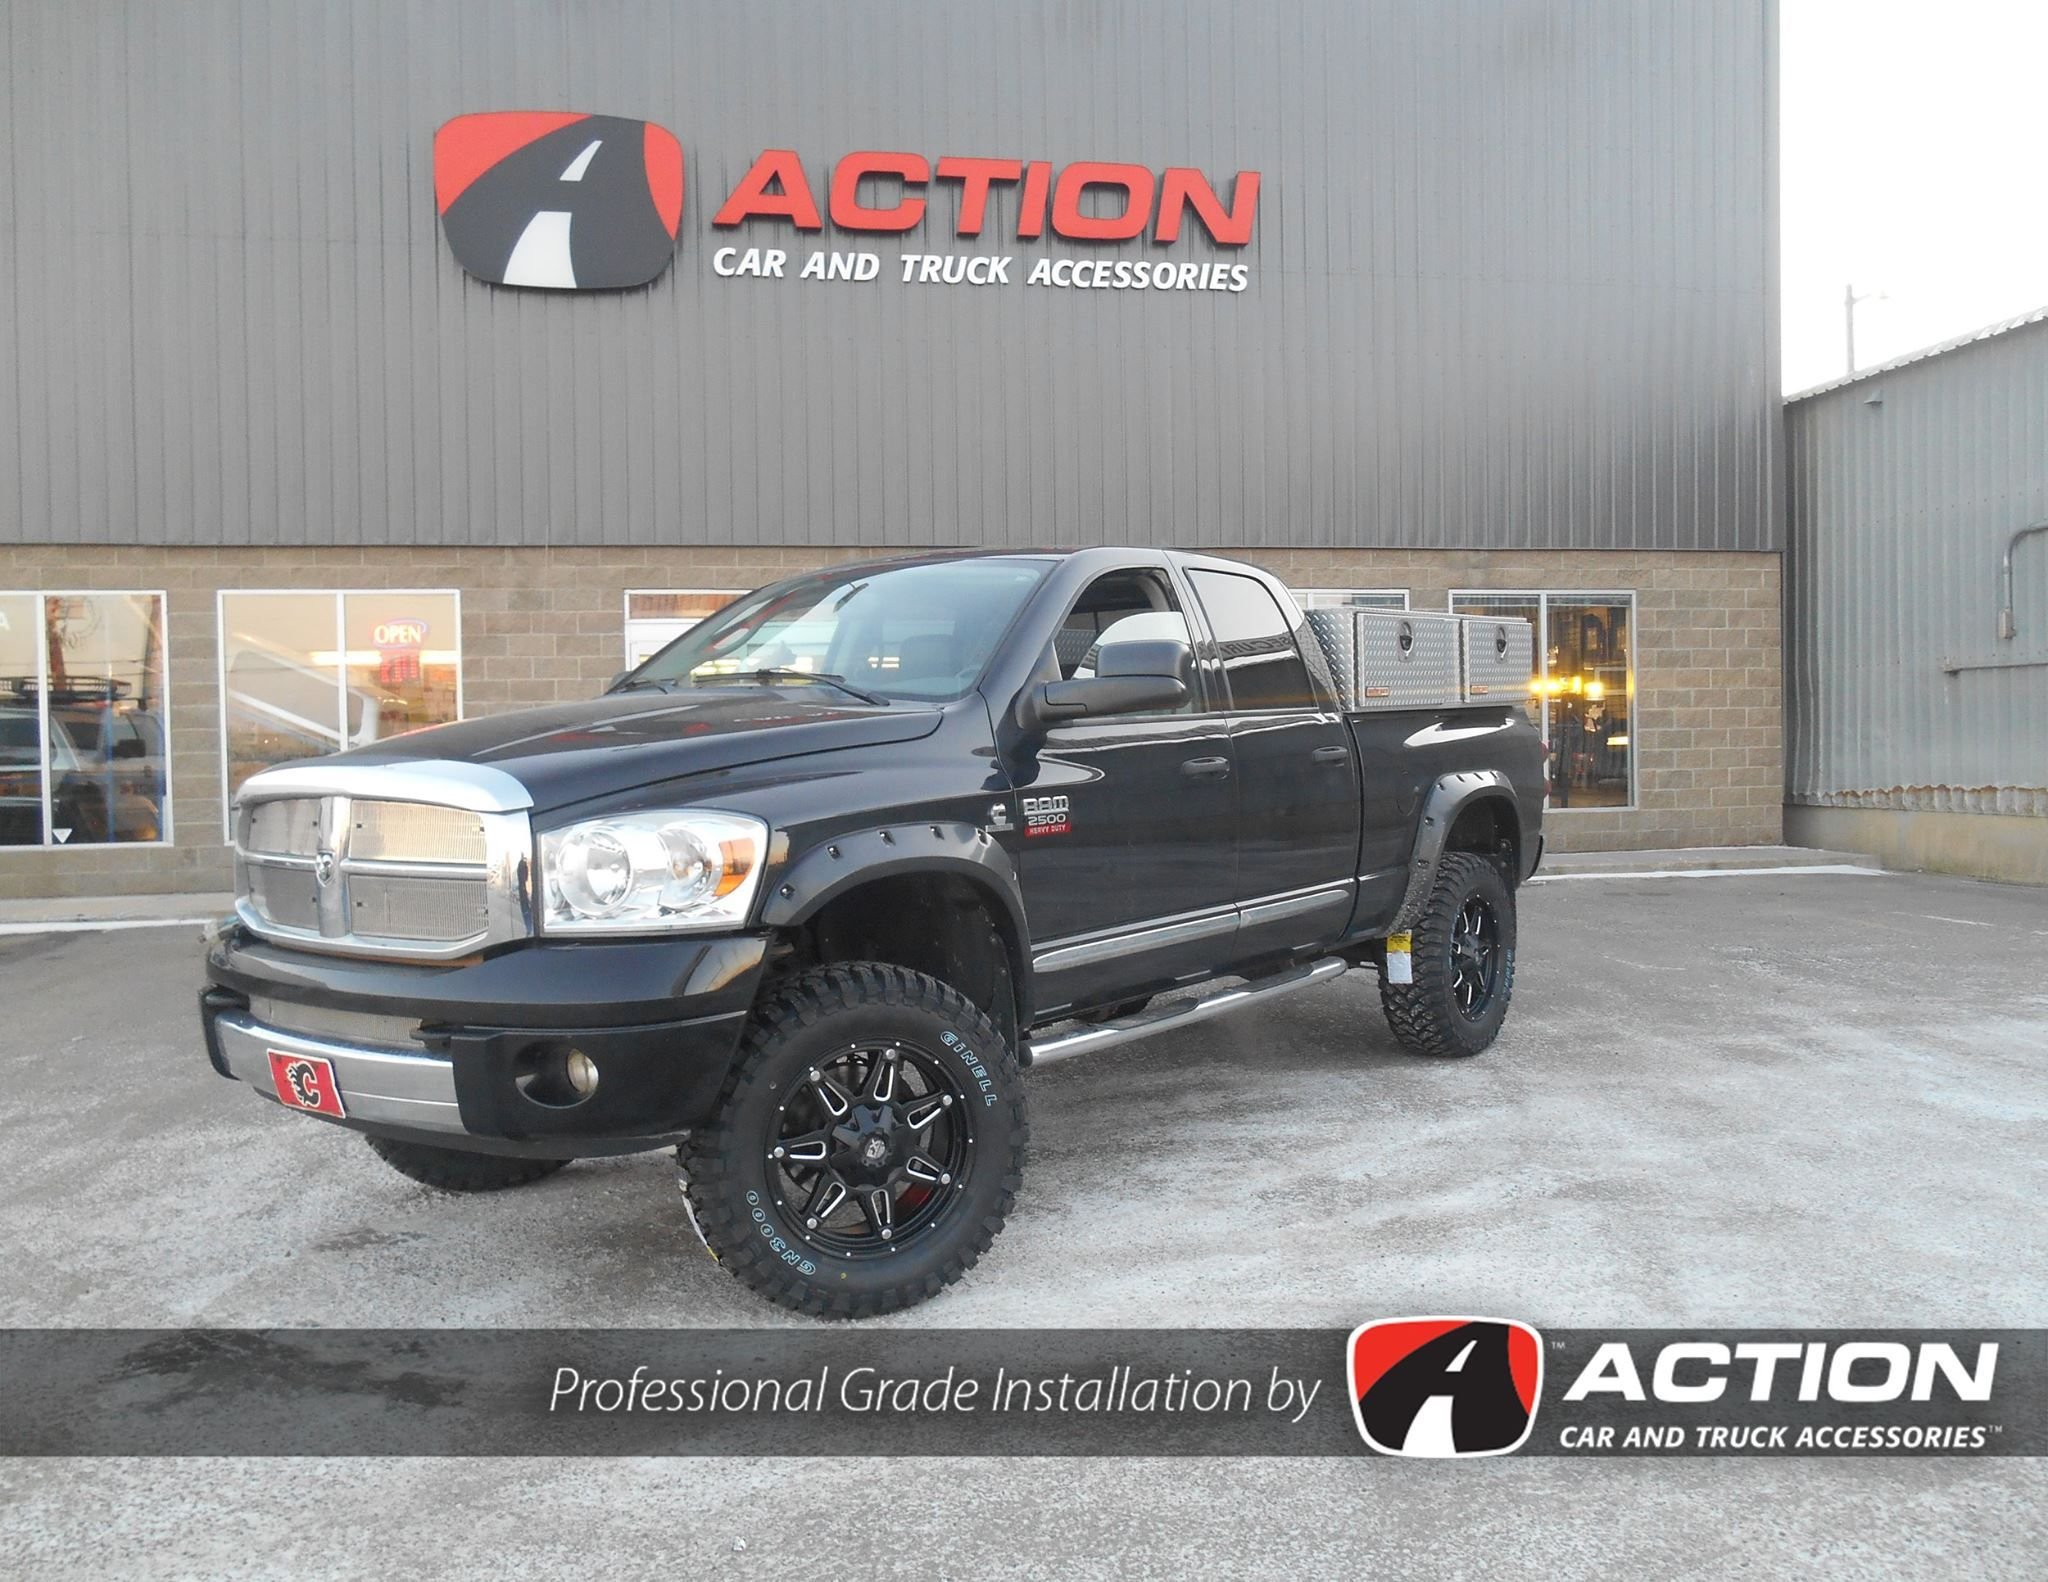 2008 Ram 2500 Cummins From Our Store In Saskatoon Sk Installed Sst Lift Kit 3 Front 2 Rear From Readylift S Truck Accessories Installation Cars Trucks